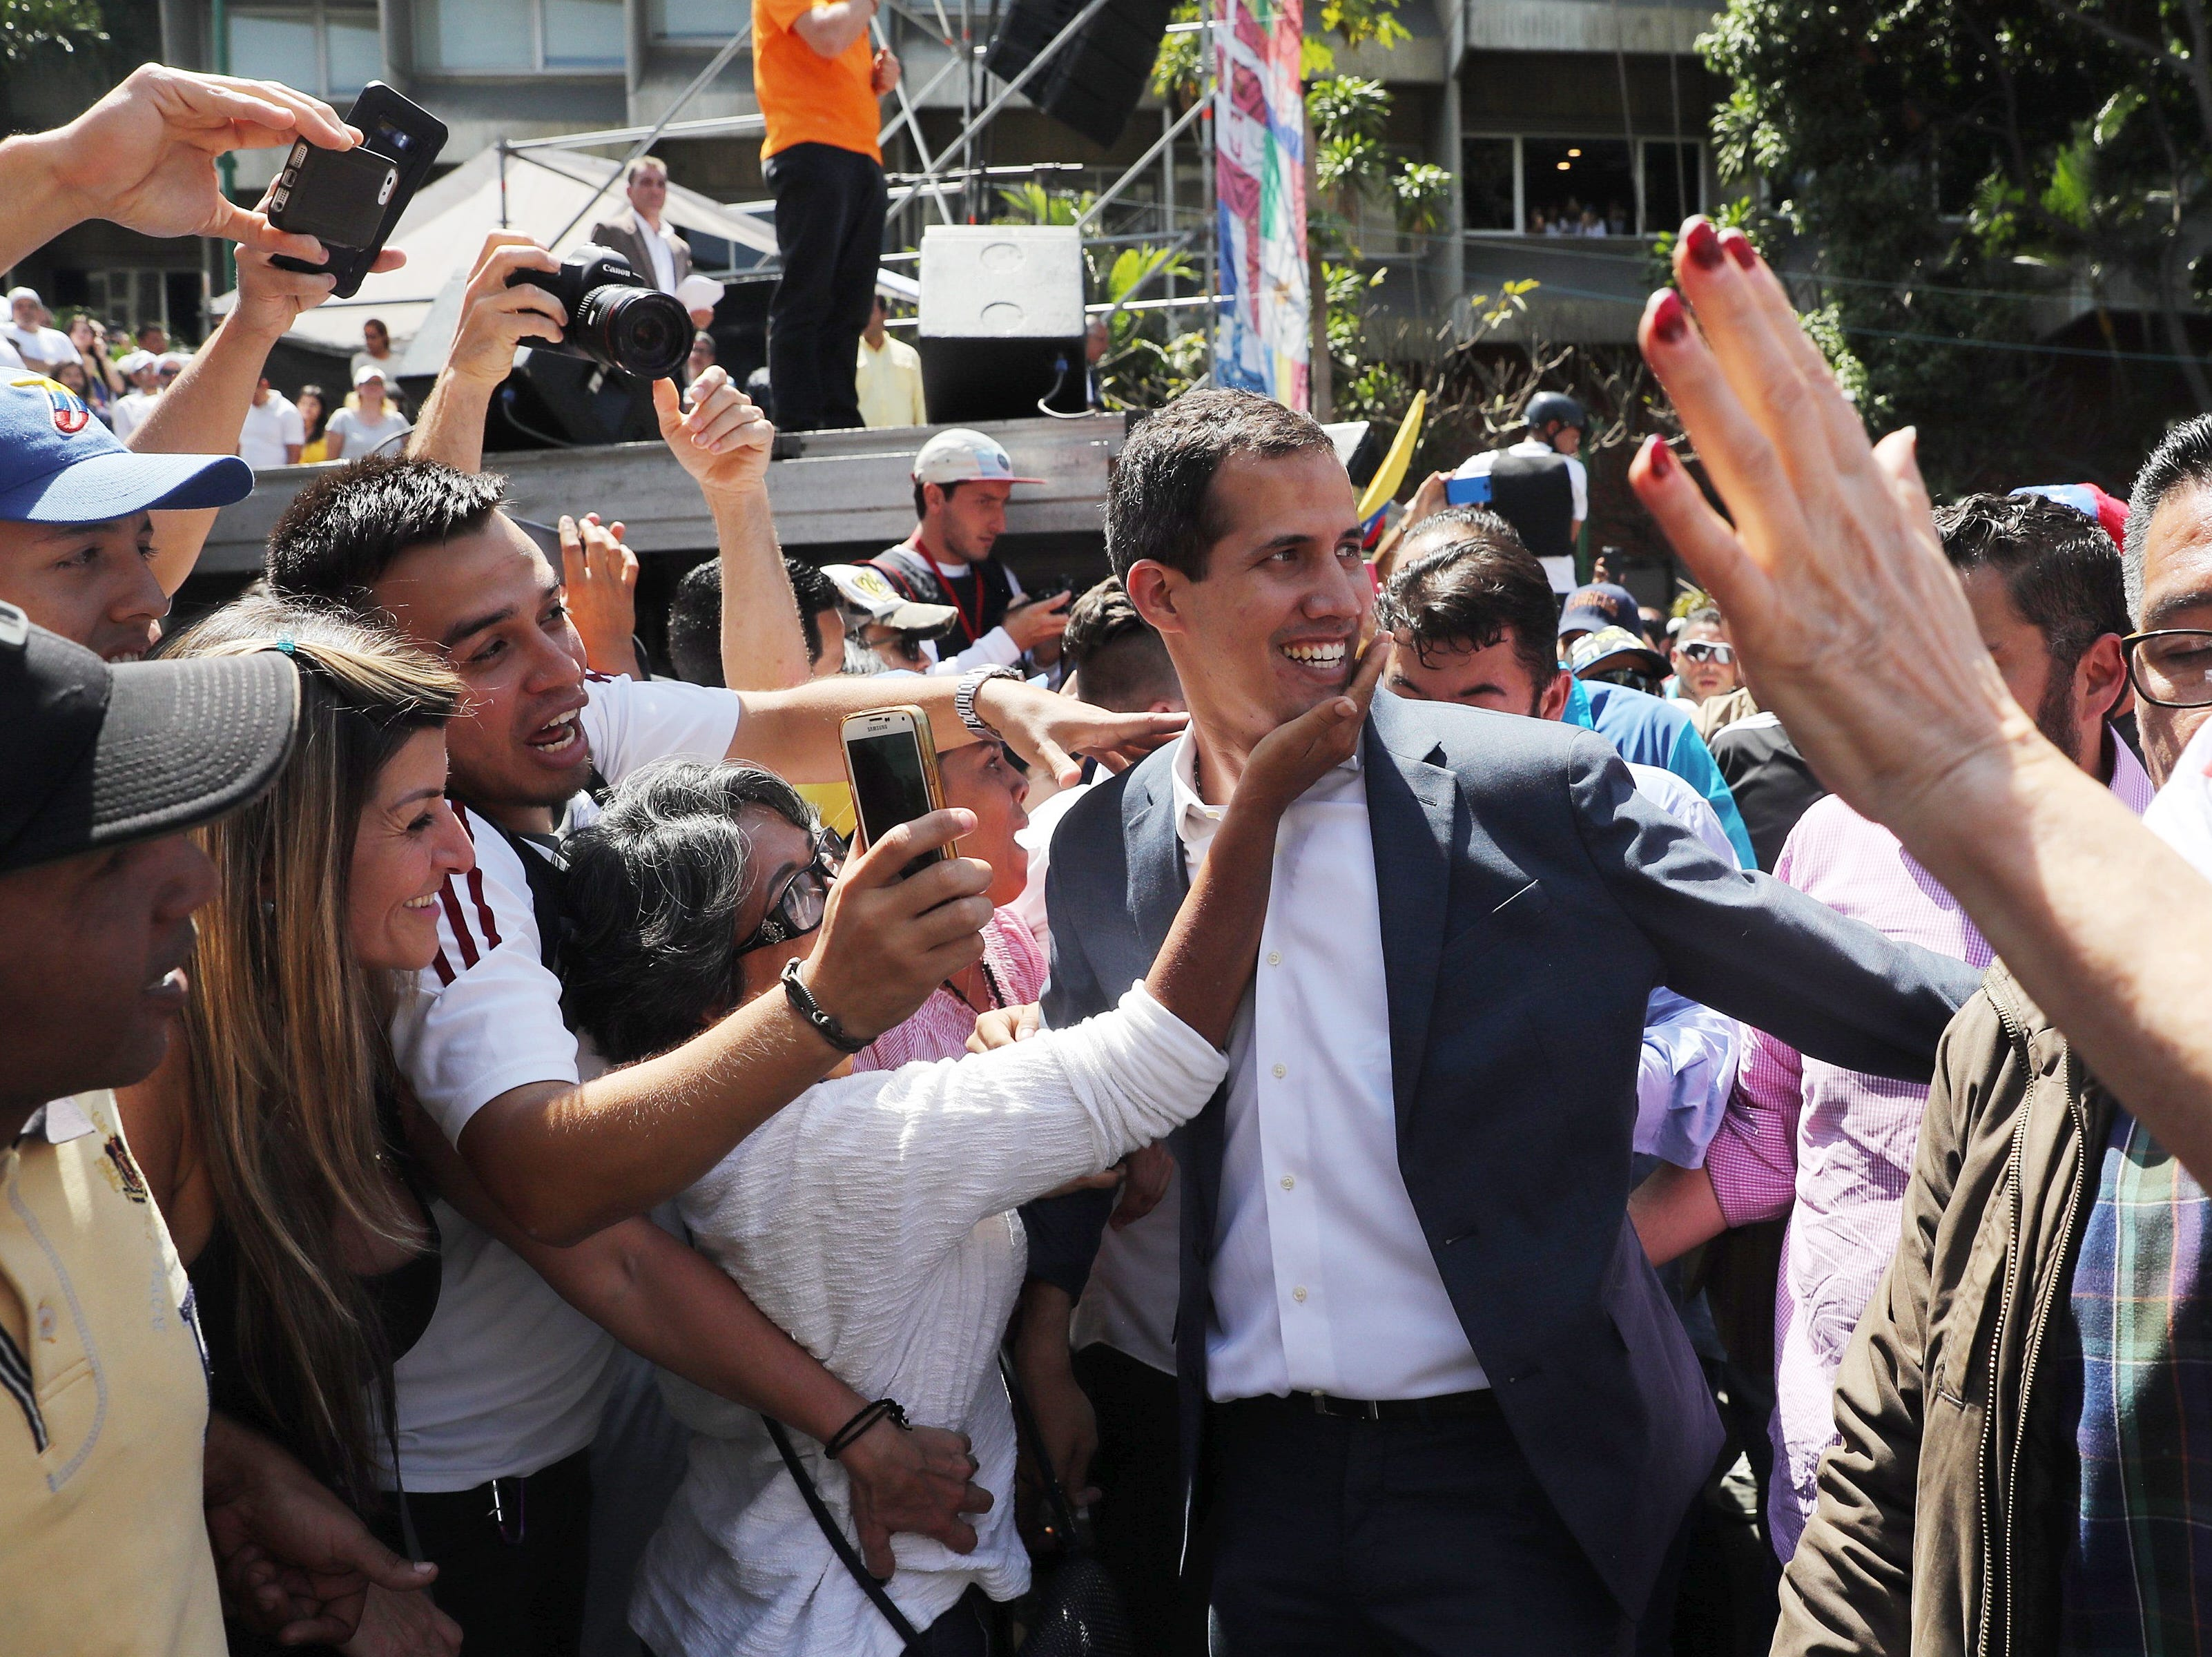 President of the Venezuelan National Assembly Juan Guaido, center, arrives to deliver a speech during a march against Nicolas Maduro's Government, in Caracas, Venezuela on Feb. 2, 2019. Maduro and his opponent National Assembly leader Juan Guaido have called on their supporters to take to the streets as international pressure increased on Maduro to resign.